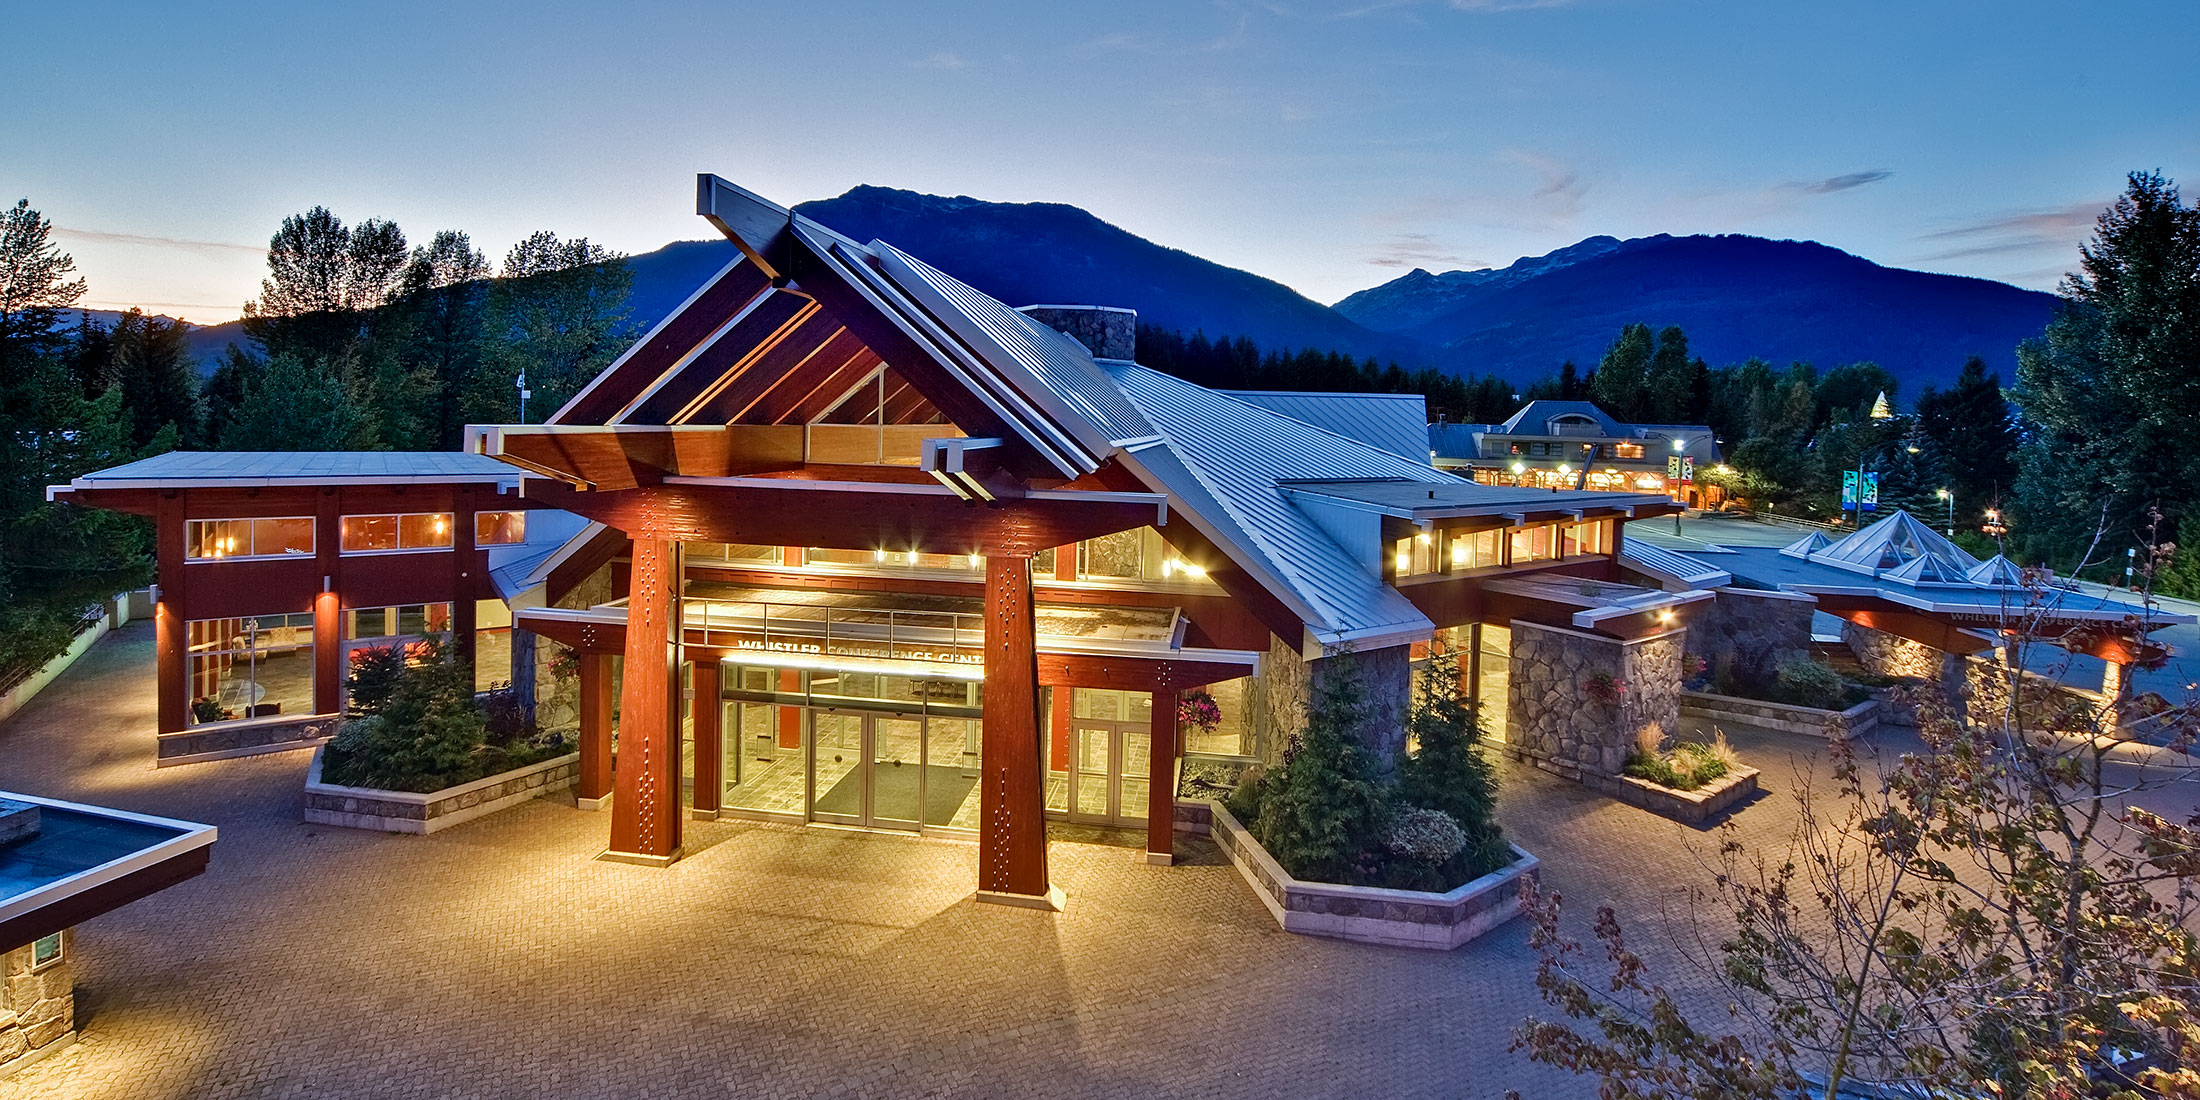 Corporate Groups in Whistler